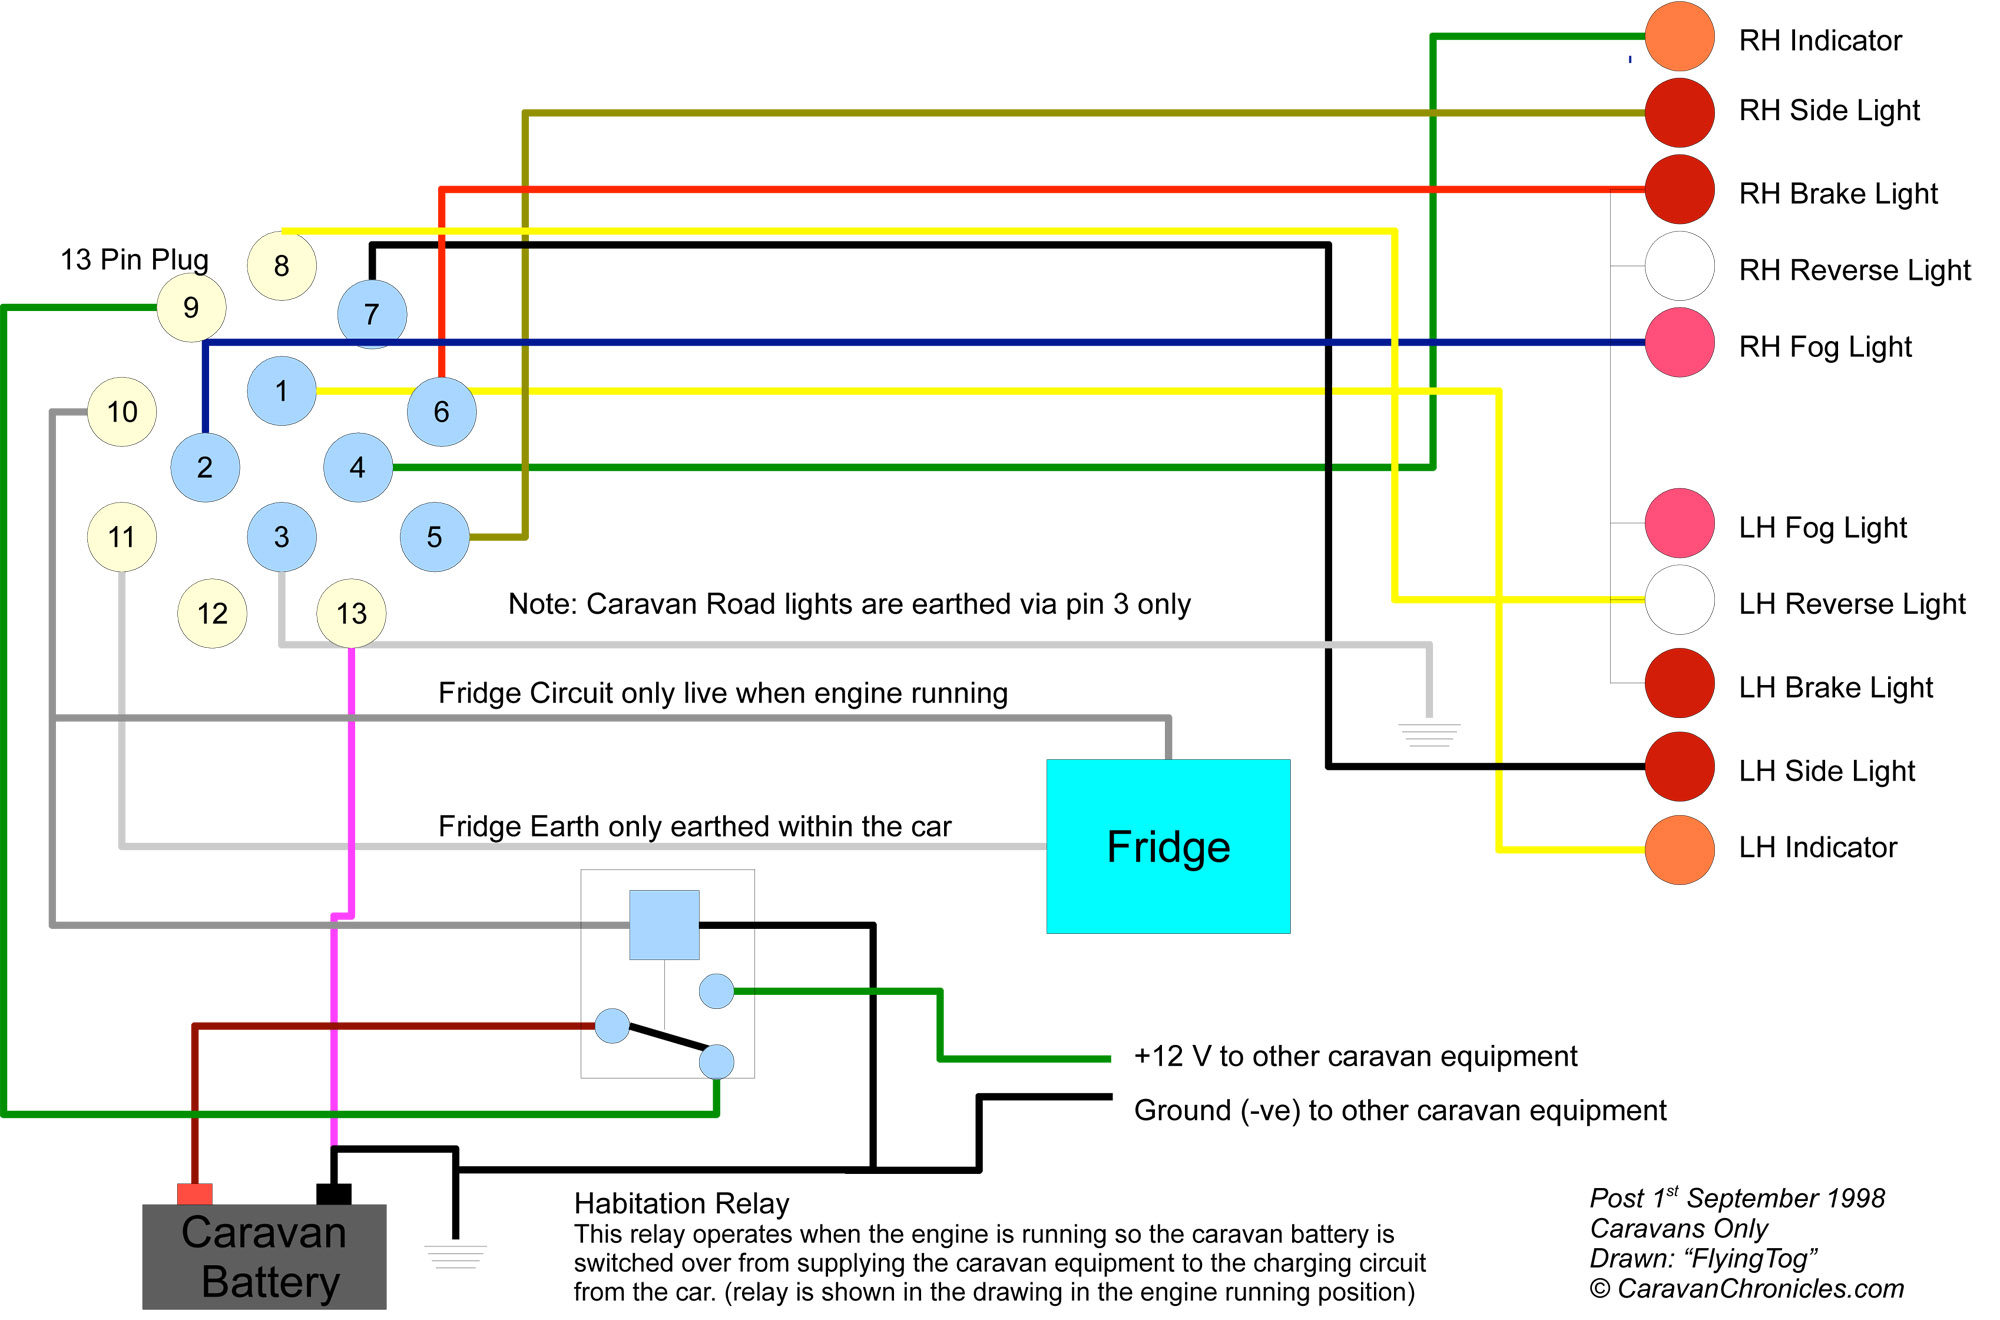 caravan wiring 13 pin understanding the leisure battery charging circuit caravan leisure battery wiring diagram at creativeand.co